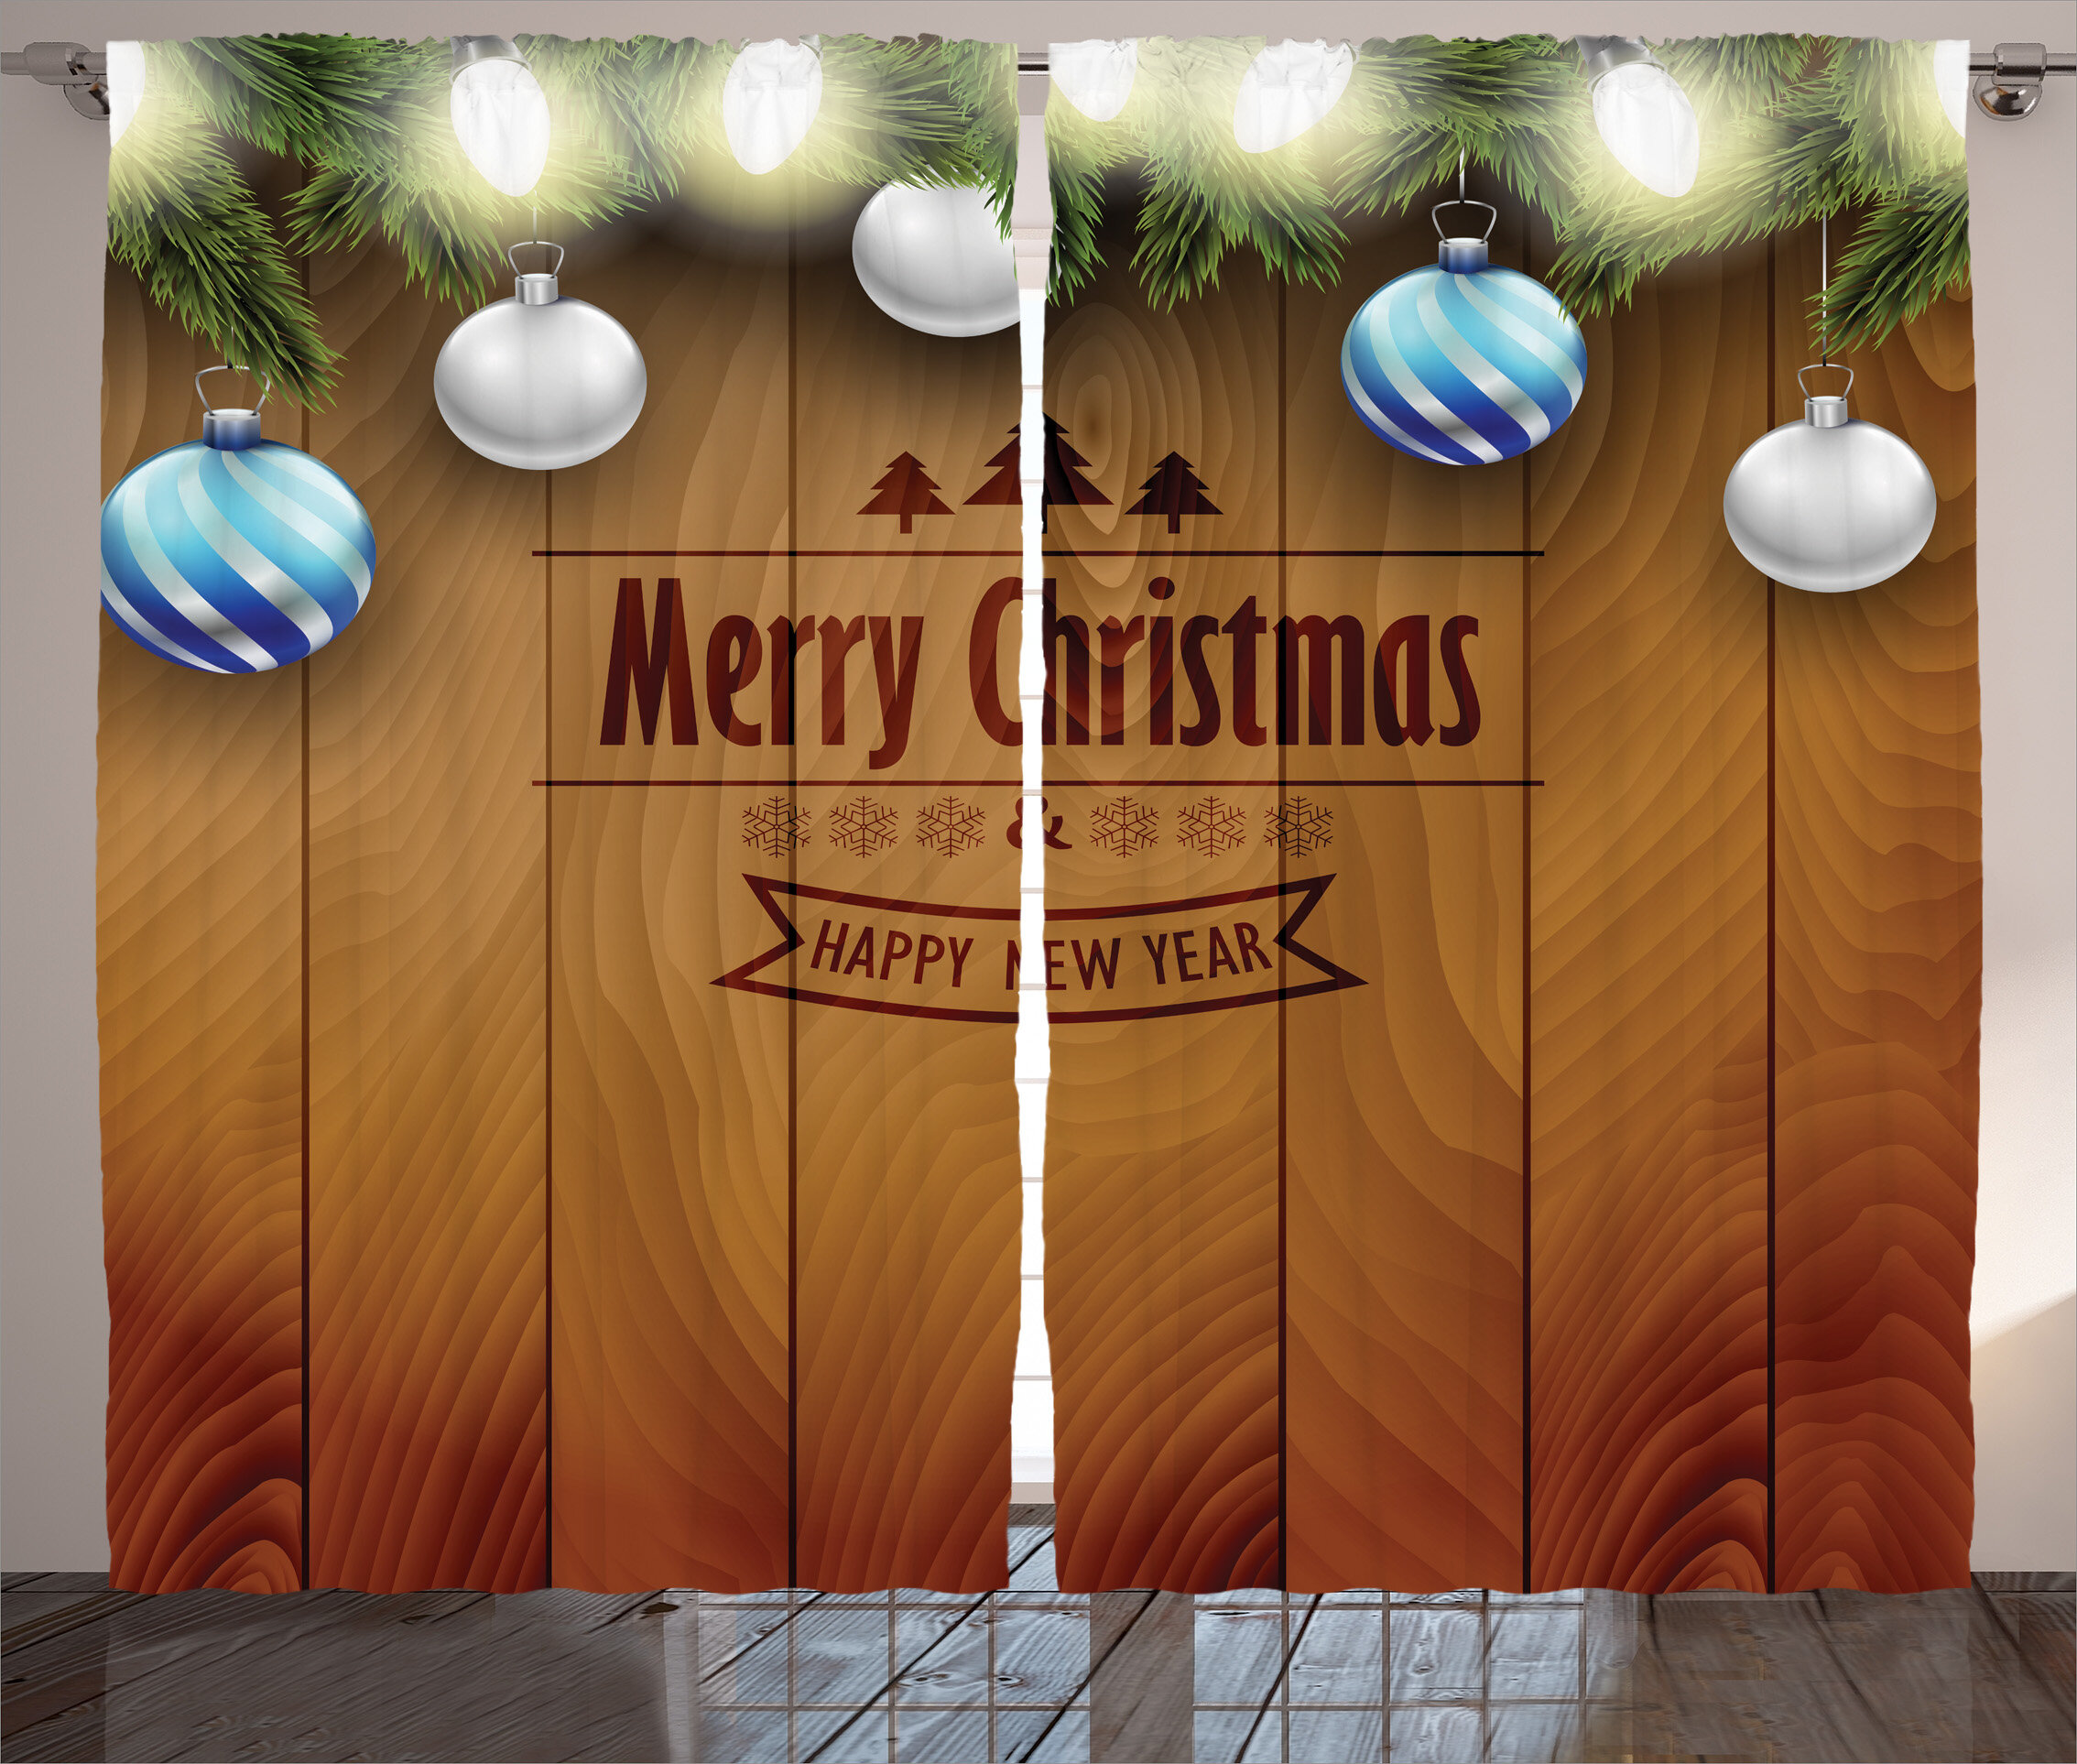 the holiday aisle christmas decorations wooden setting with silver balls fairy lights and pine twigs wishes theme graphic print text semi sheer rod pocket